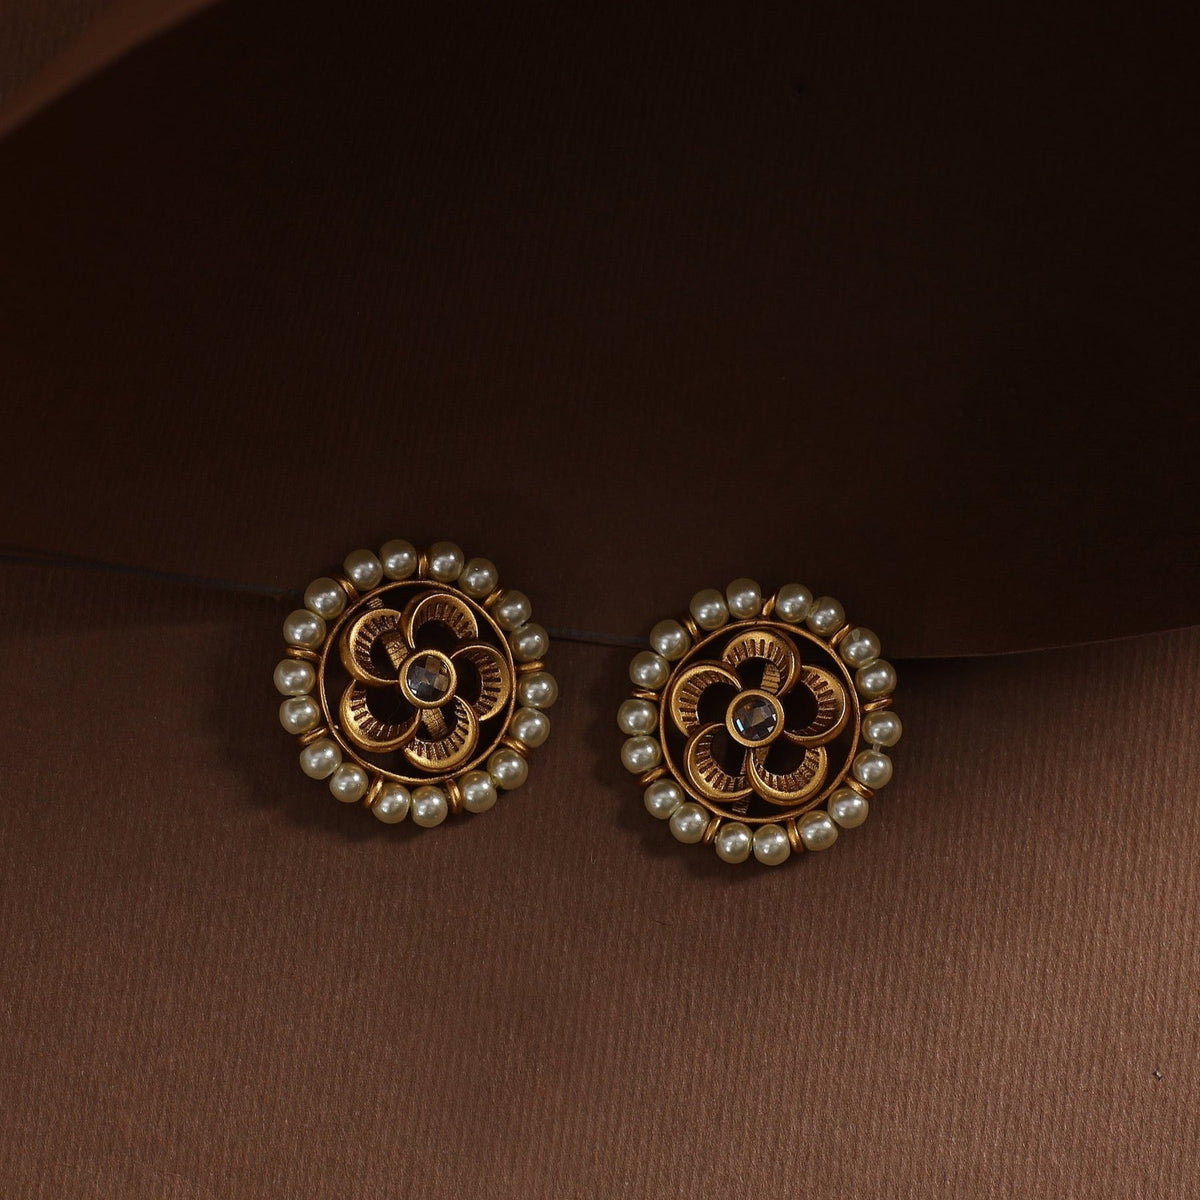 Pearl Floral Antique Earrings